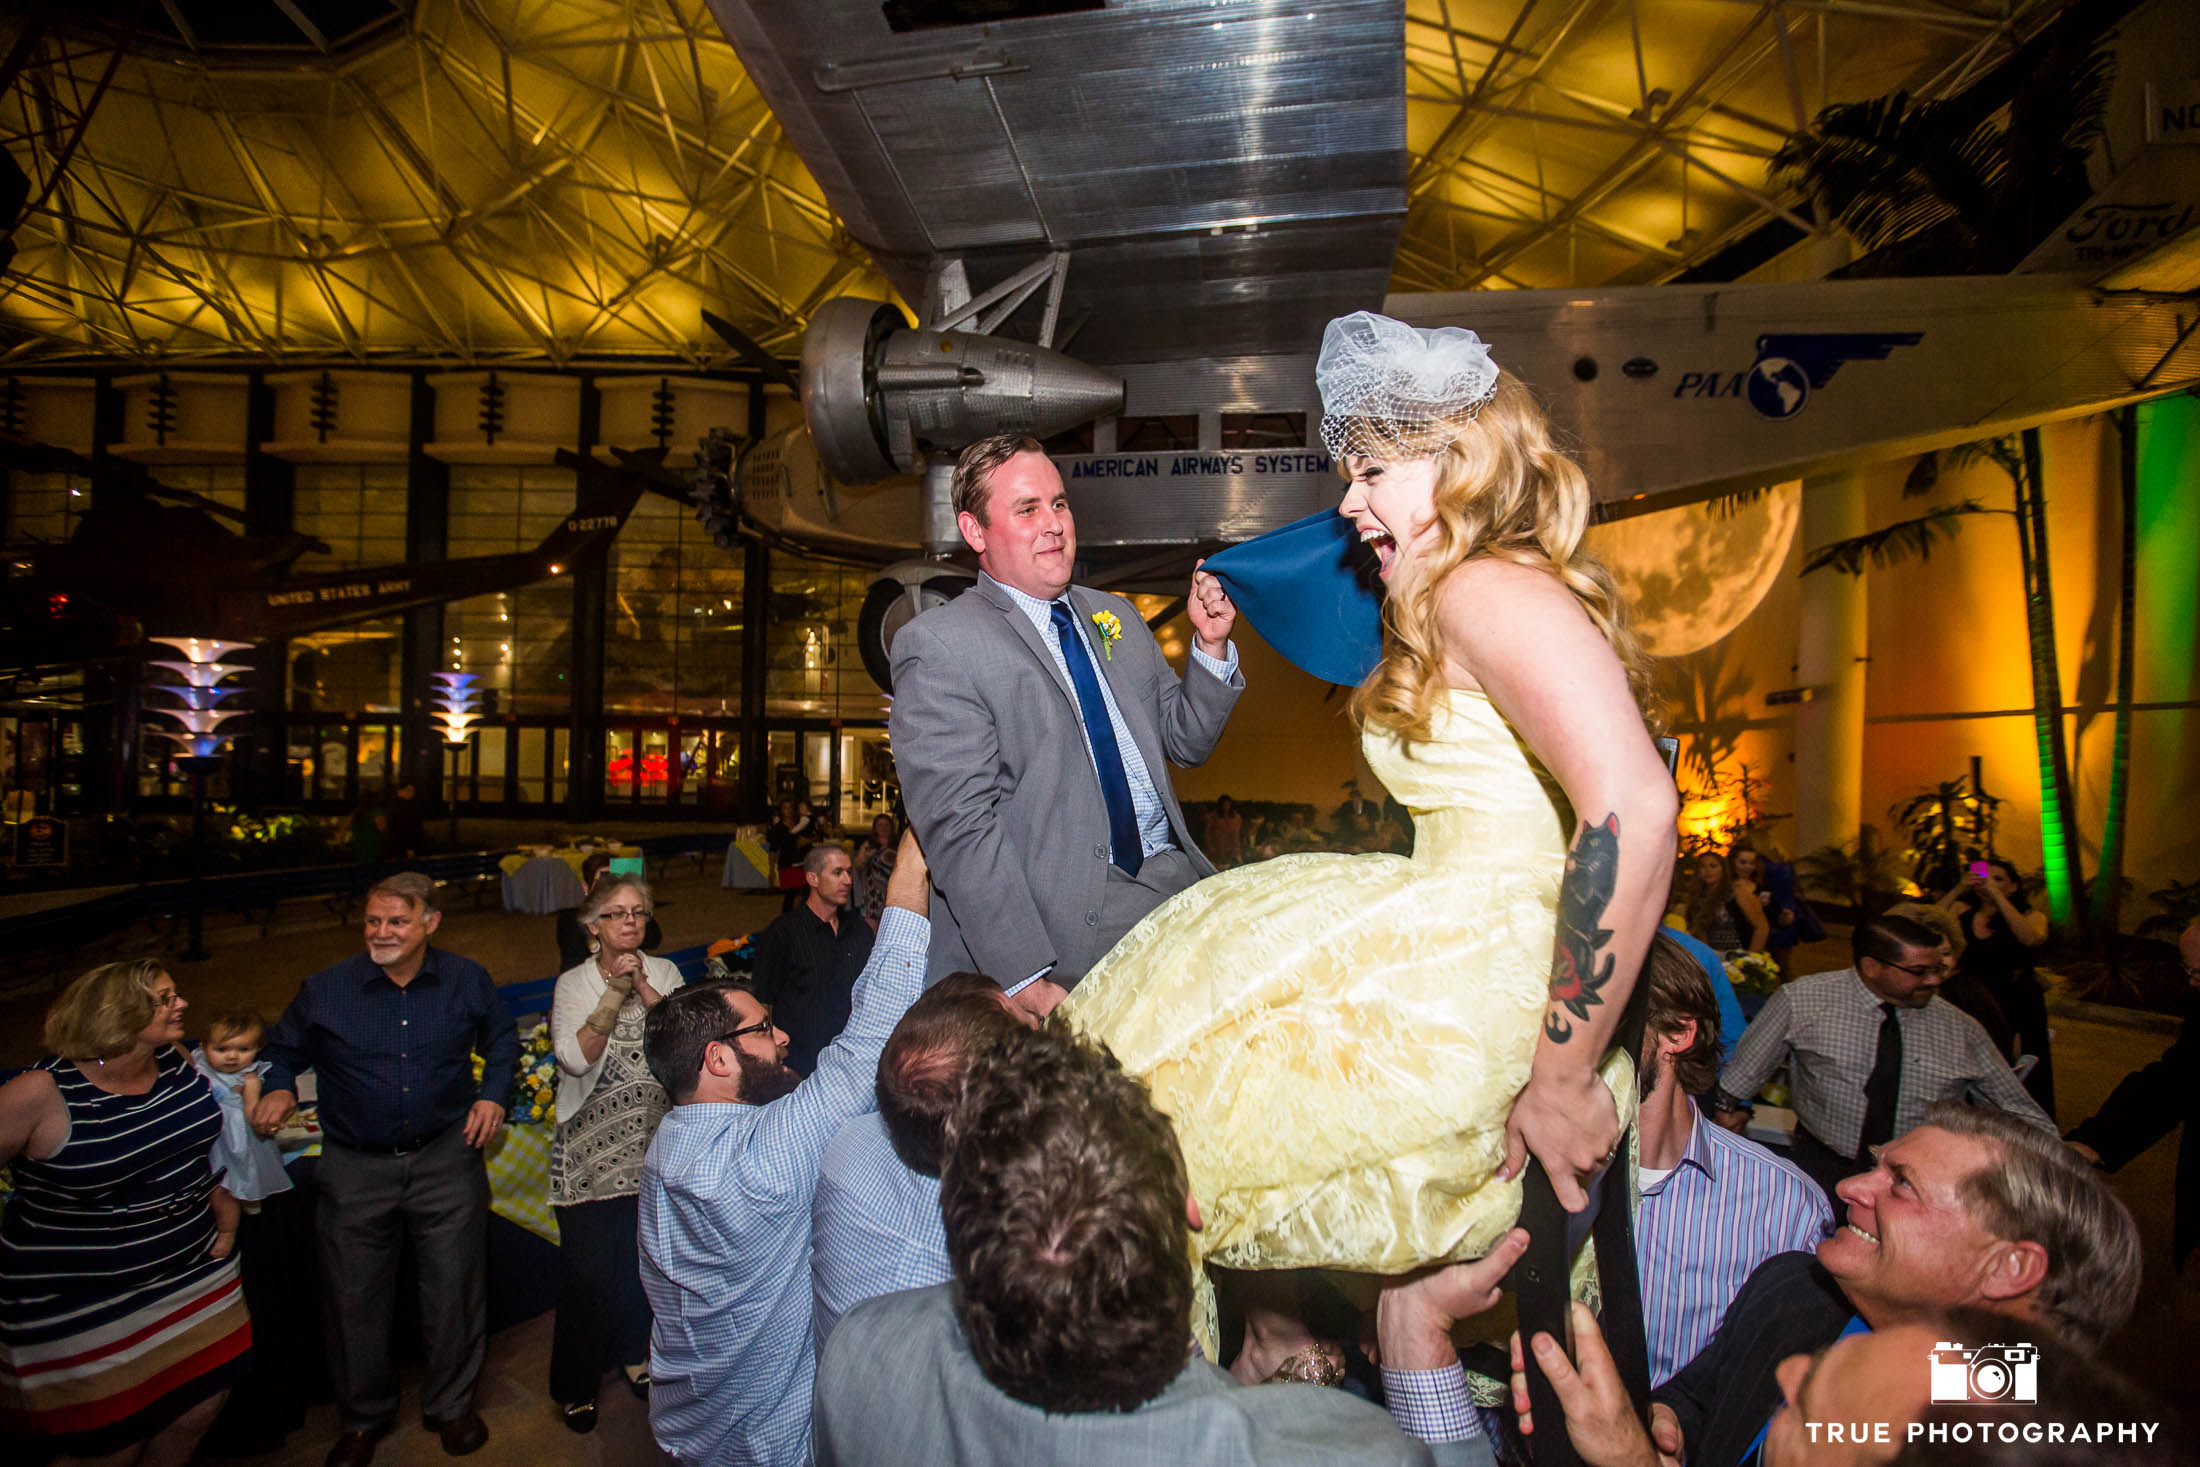 Guests lift Bride and Groom for Hora Dance during wedding reception